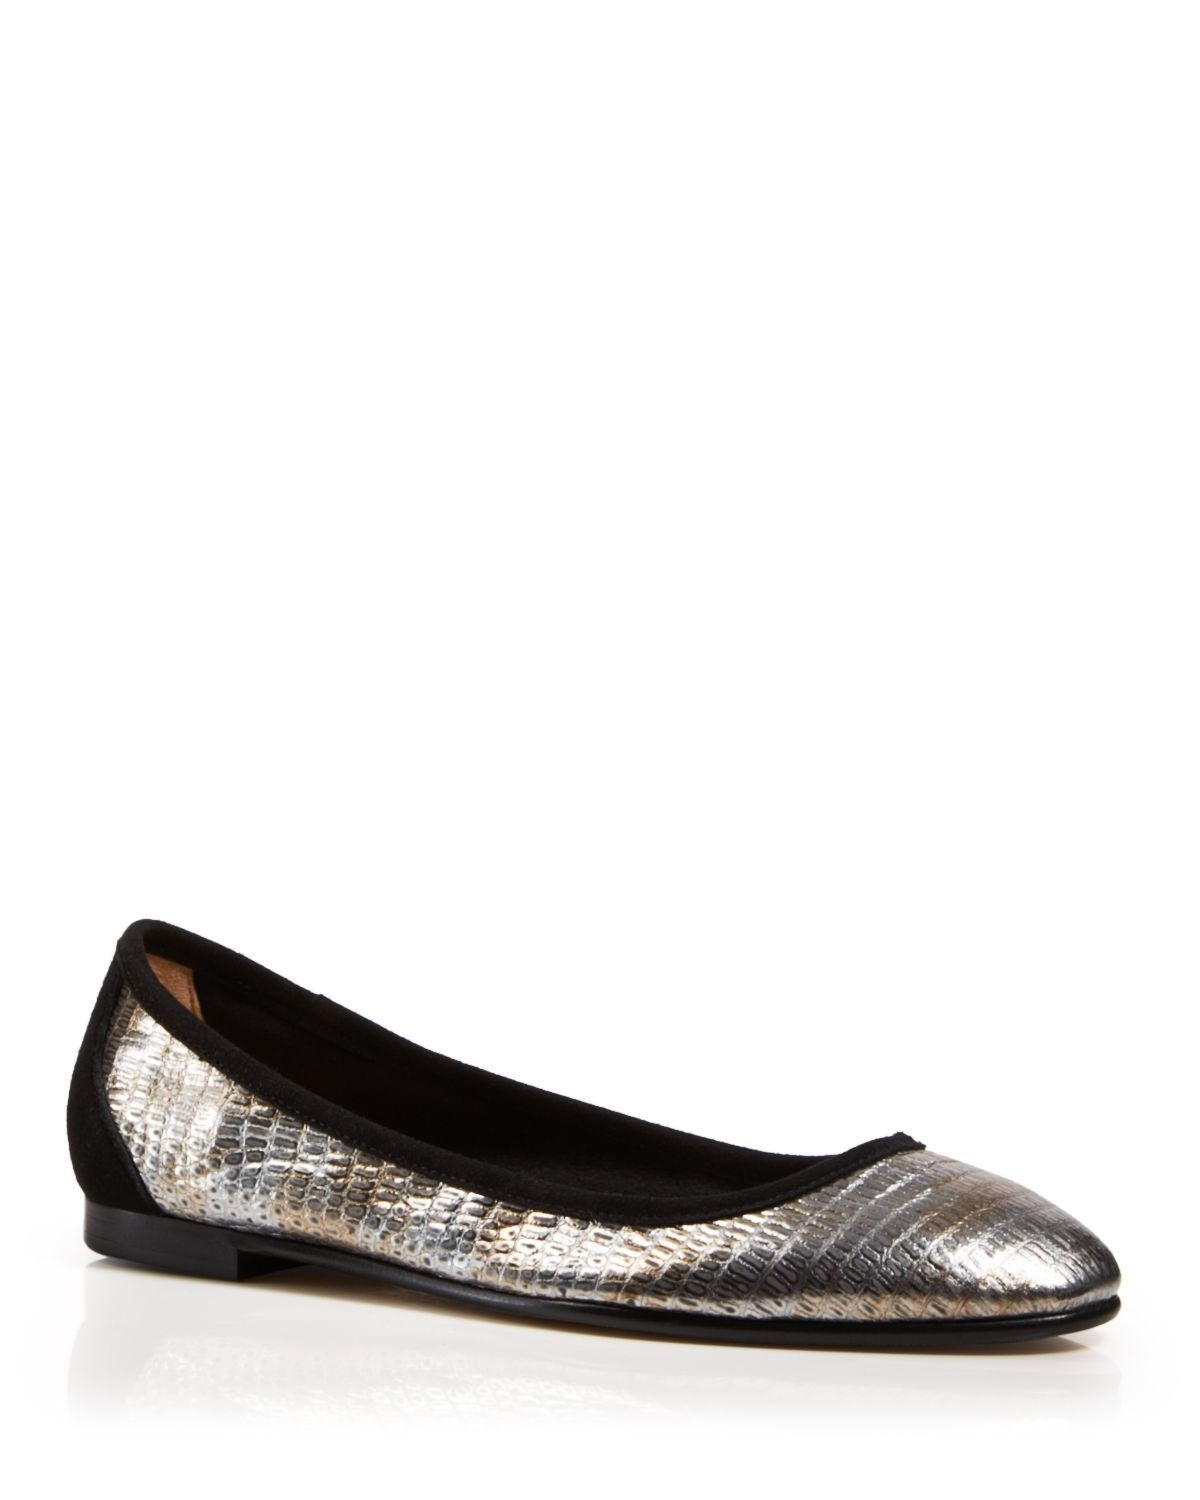 Via Spiga Metallic Leather Flats discount shopping online sale cost XVfkM